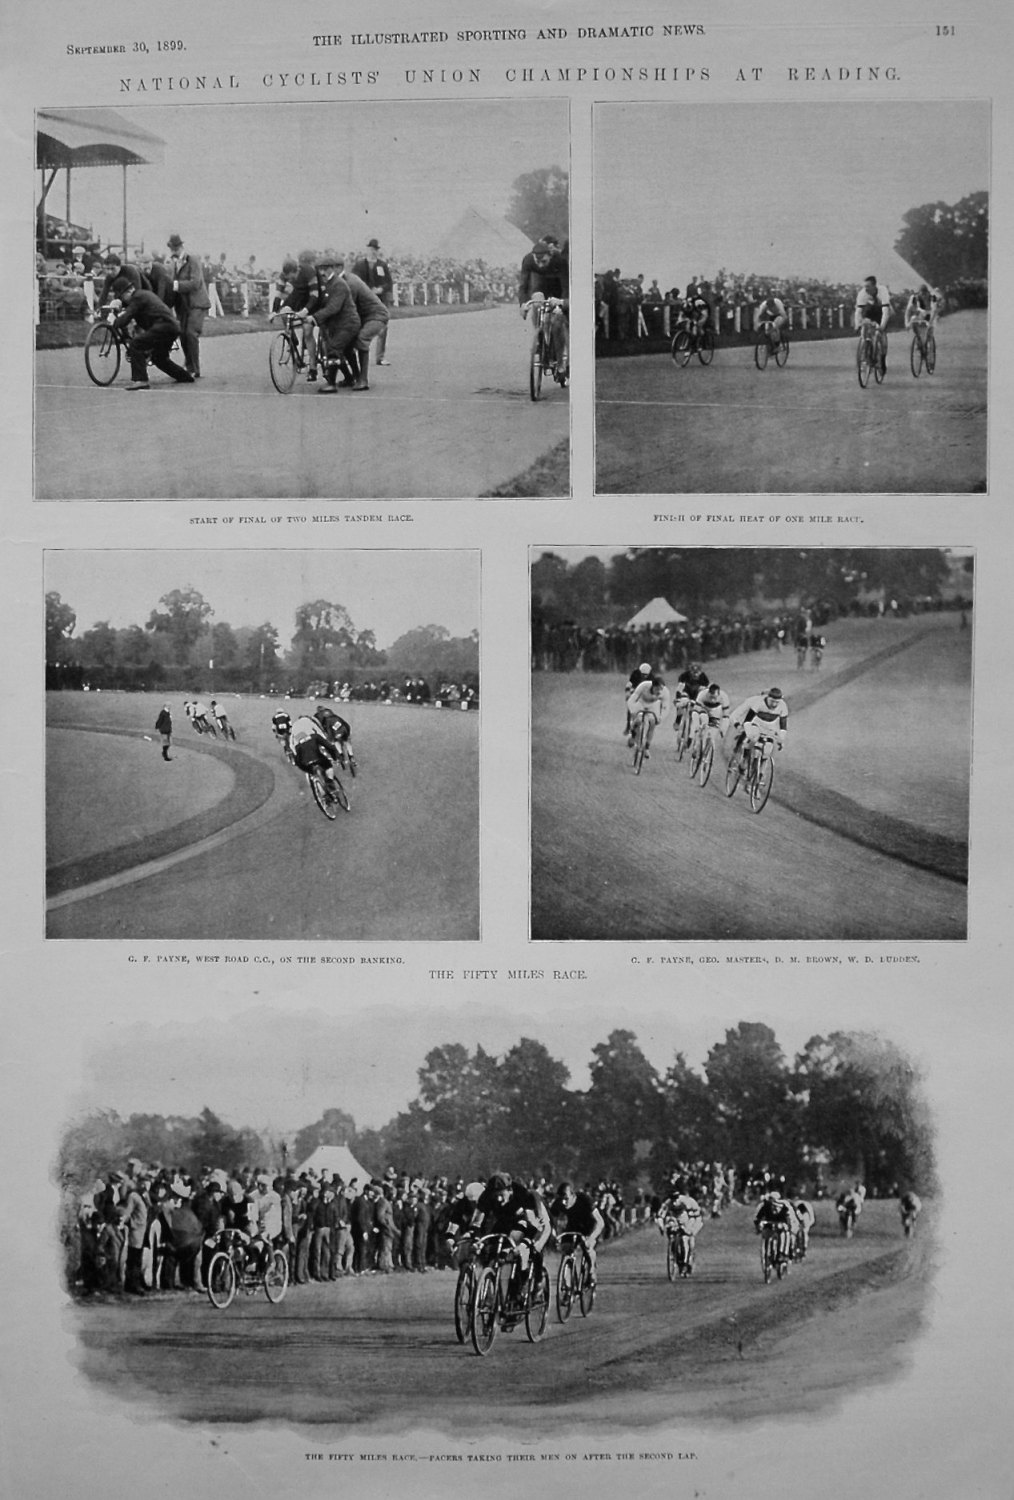 National Cyclists' Union Championships at Reading. 1899